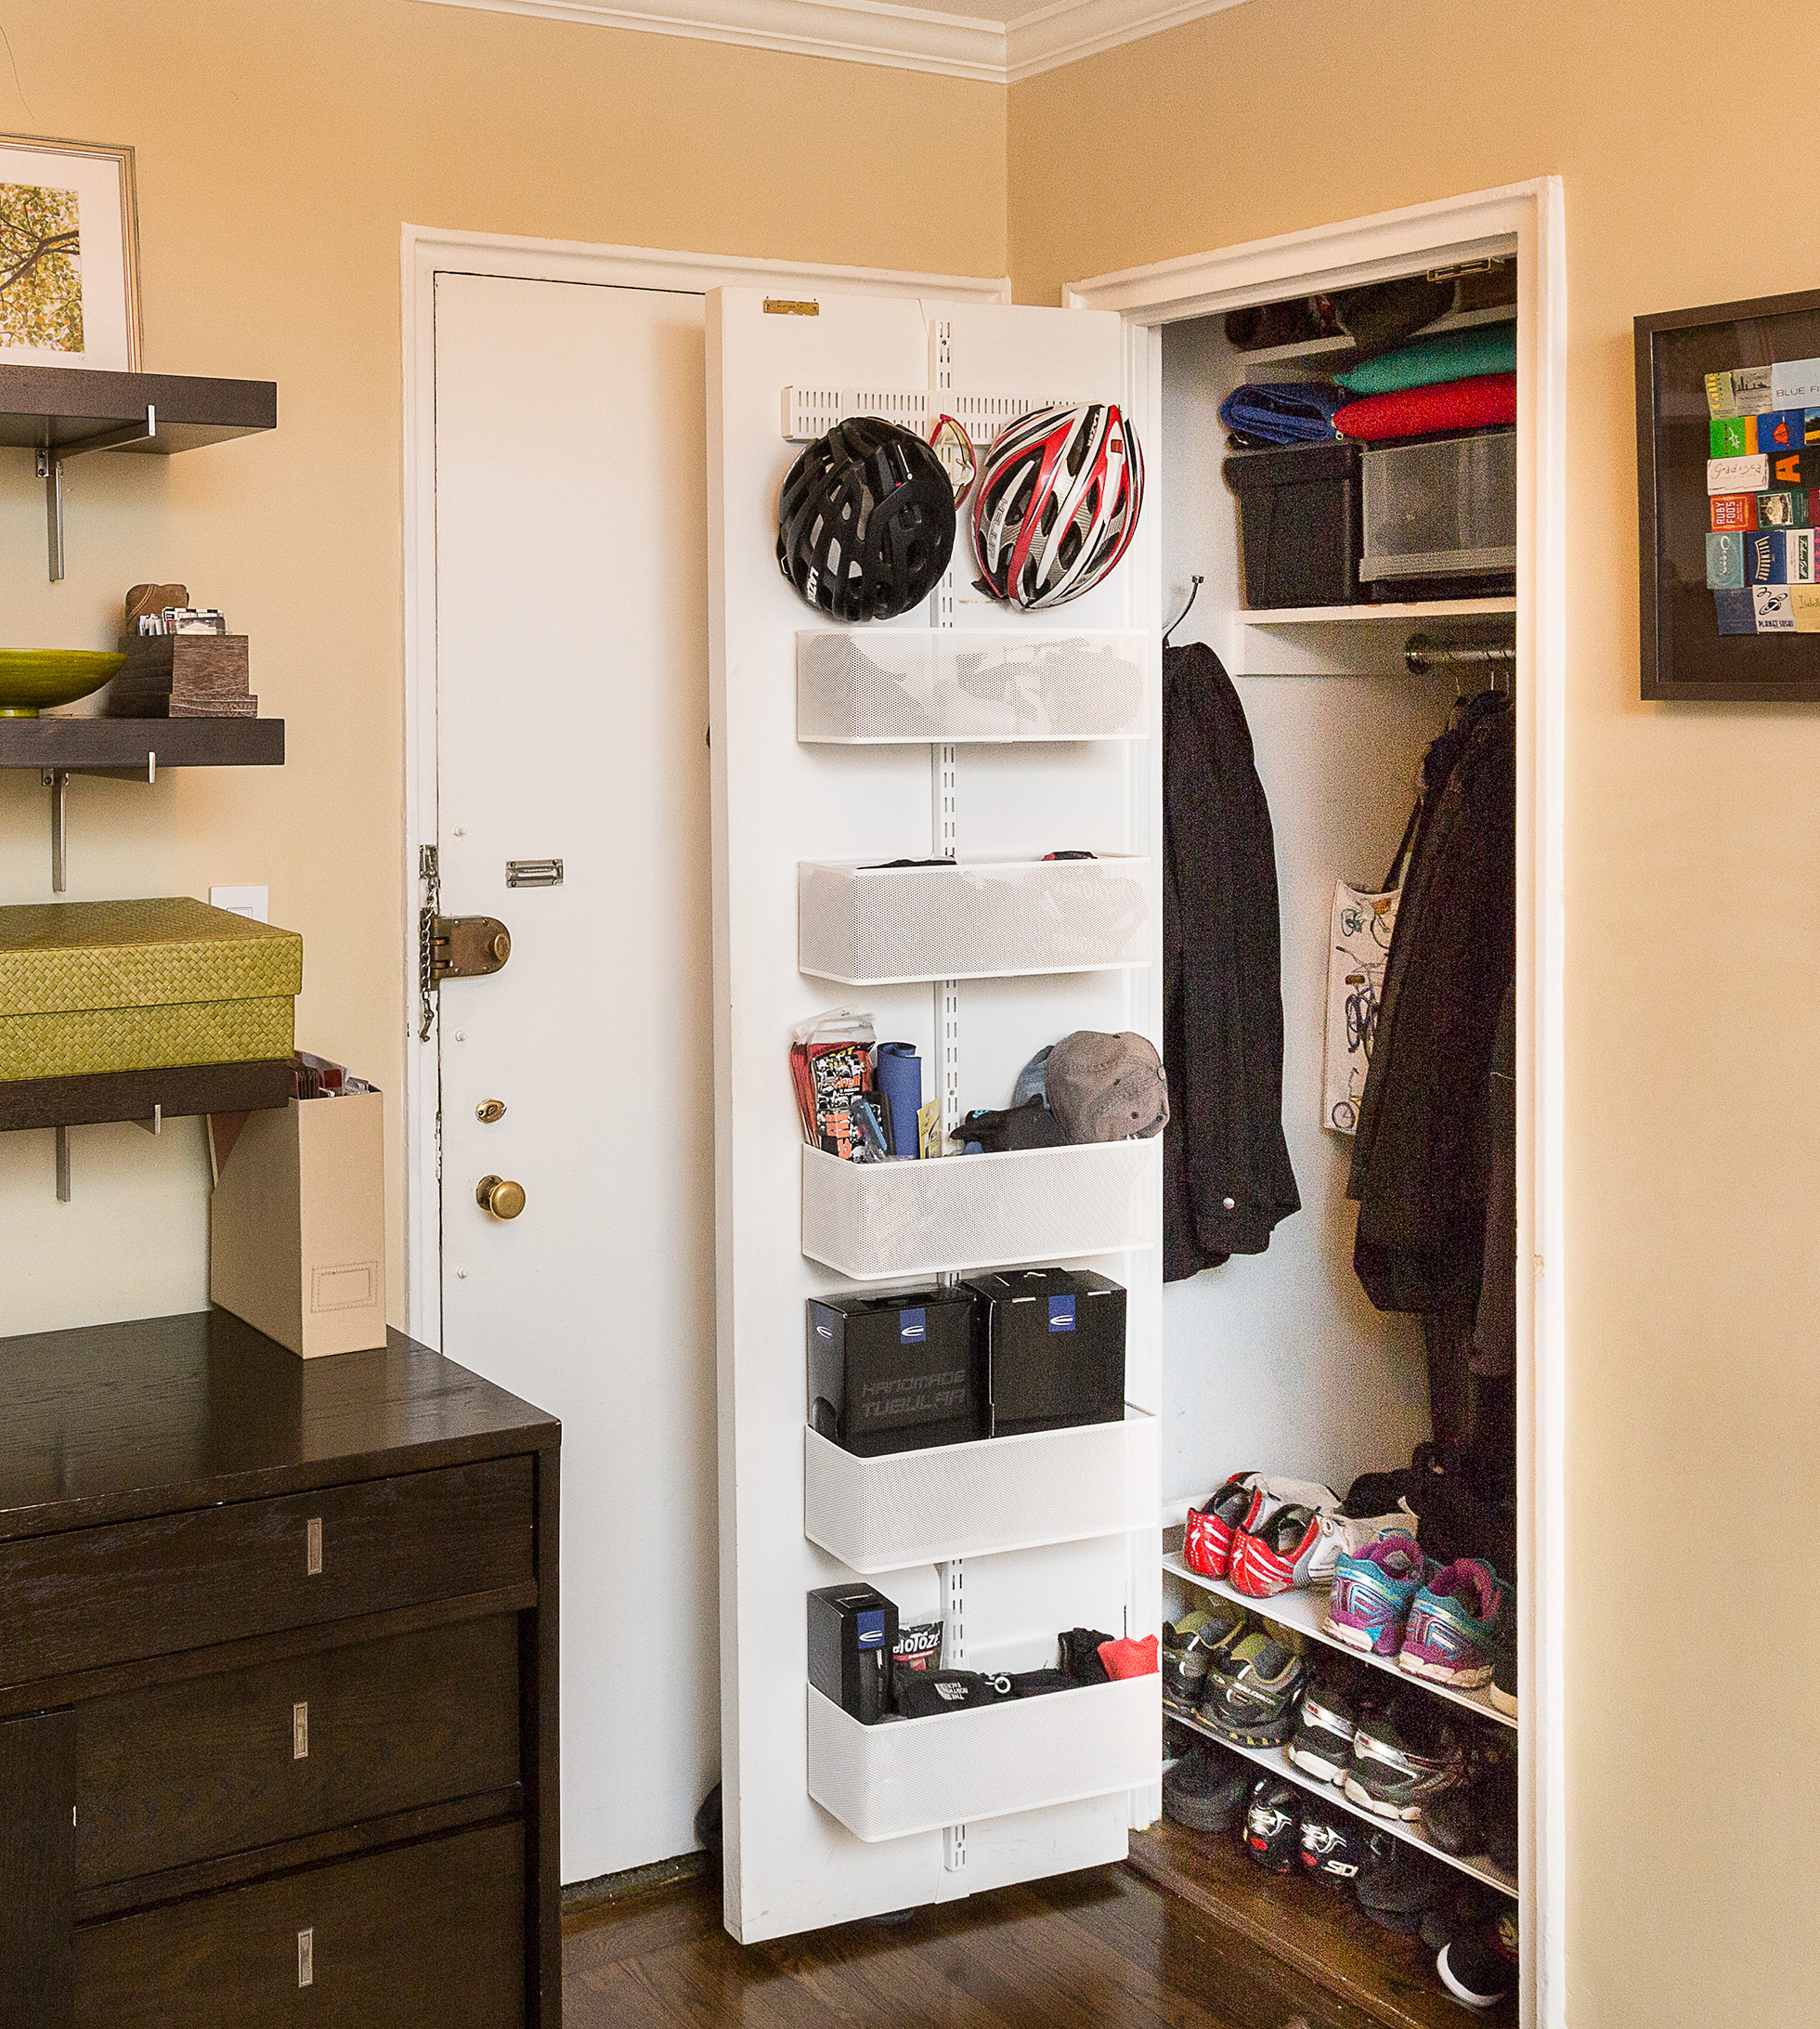 Storage Solutions for Small Spaces | Home Organizing Ideas on Small Apartment Organization  id=90492